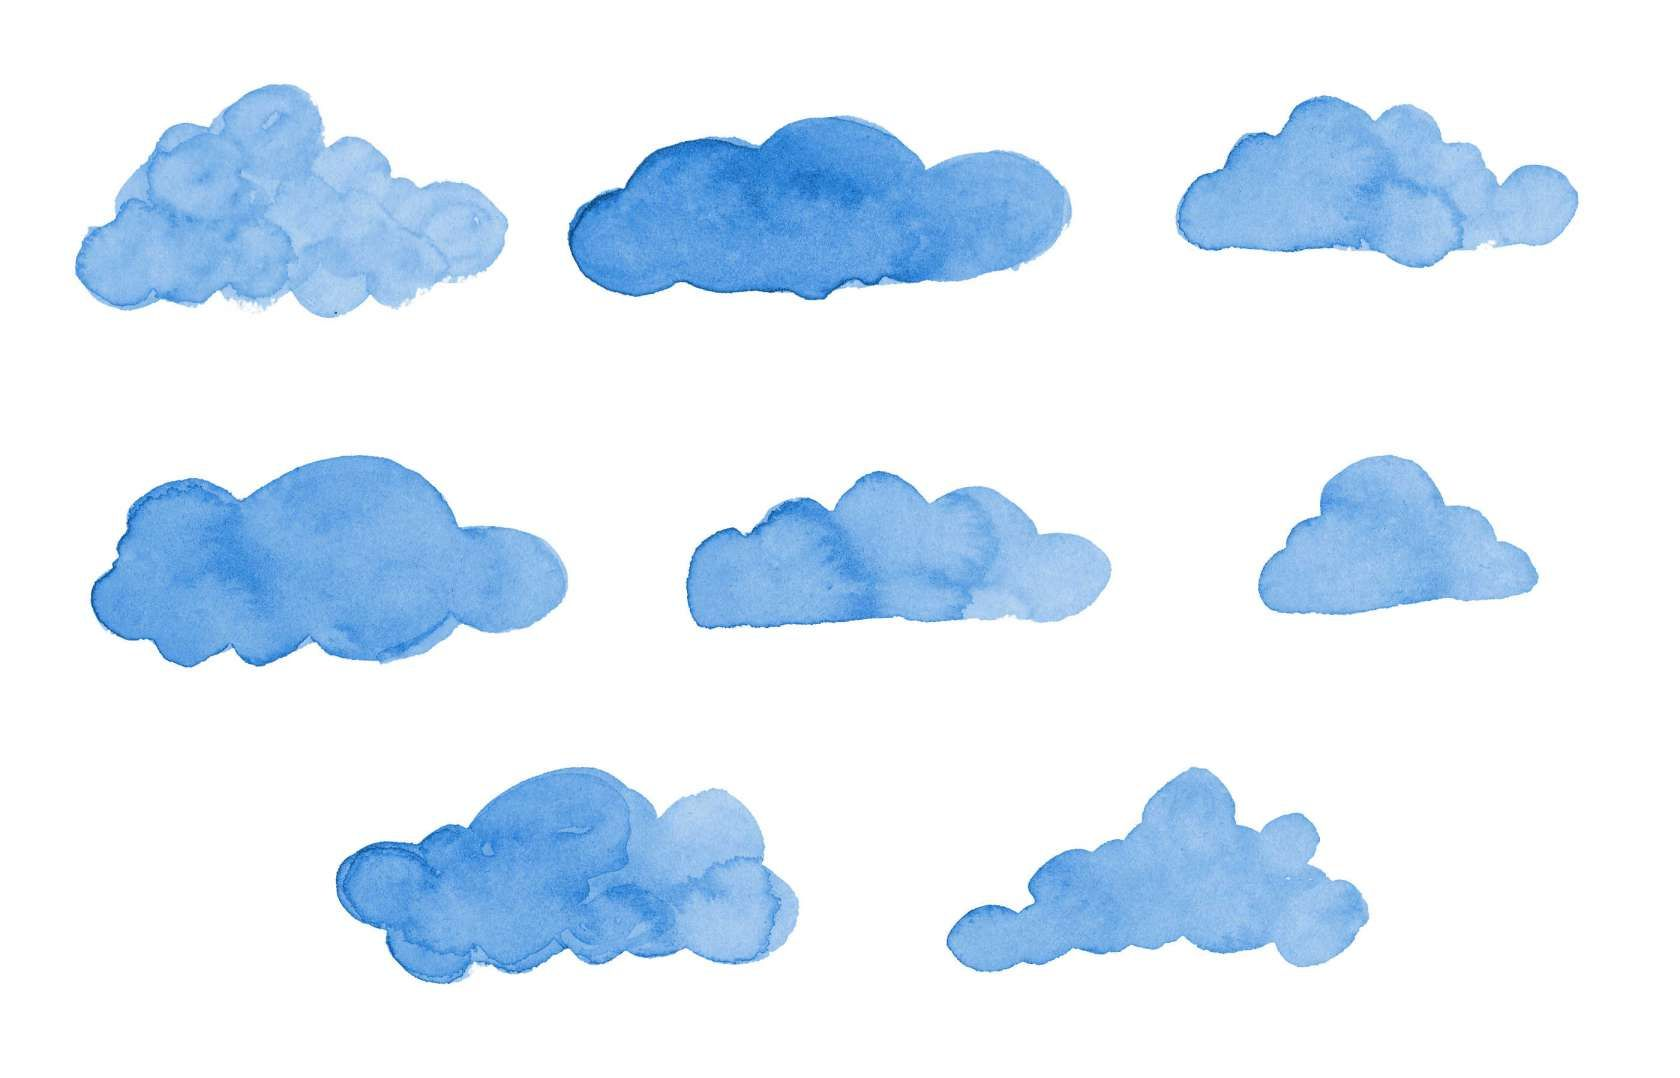 10 Blue Clouds Png